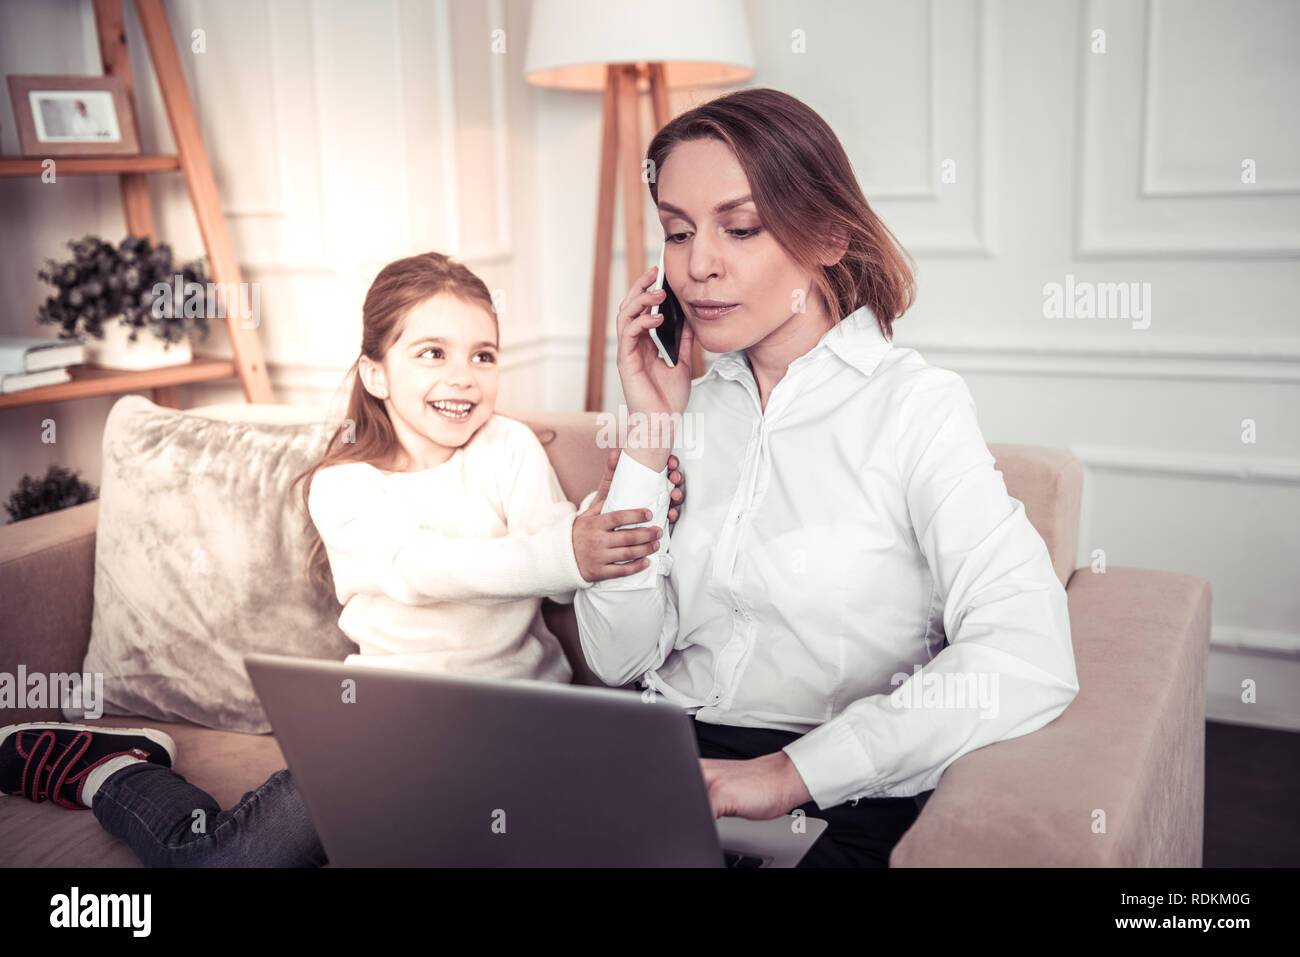 Serious professional businesswoman talking on the phone - Stock Image